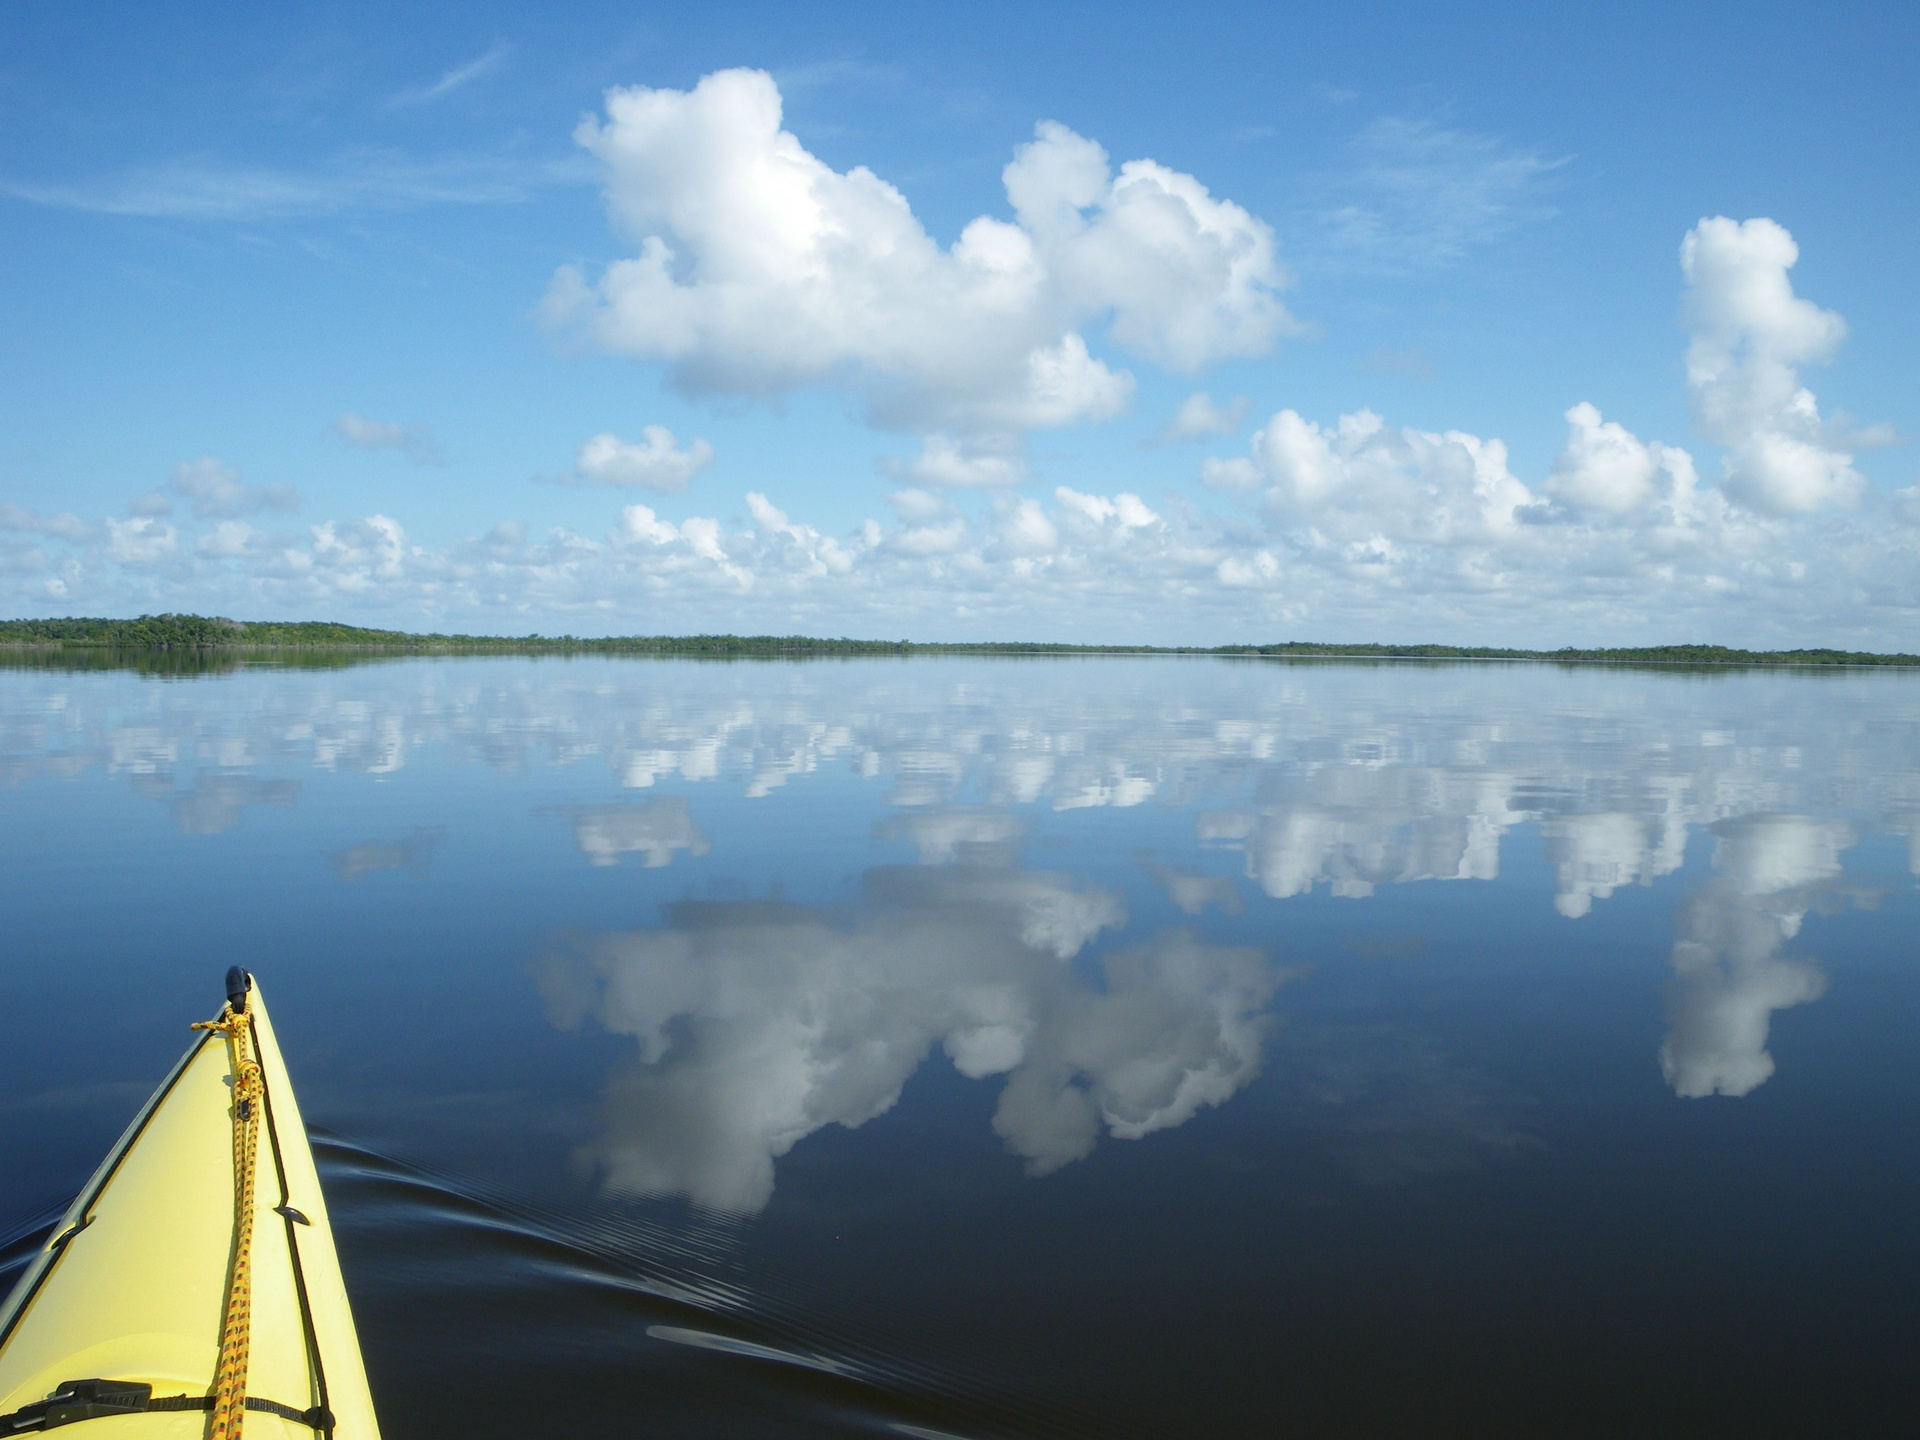 Everglades - reflections of clouds